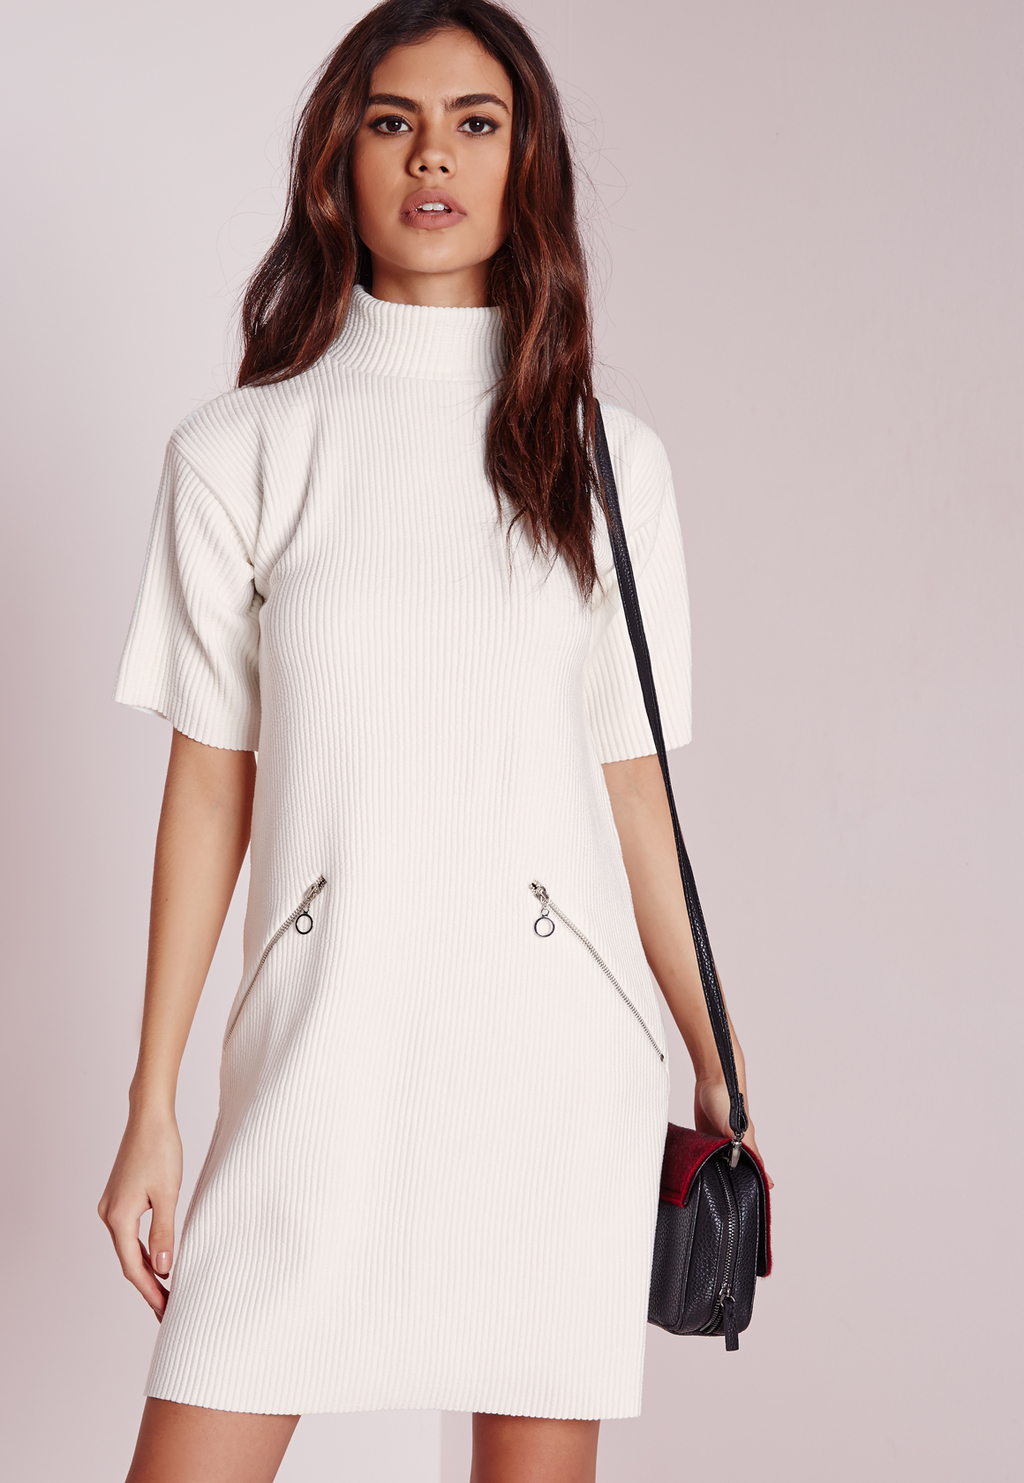 Short Sleeve High Neck Rib Shift Dress White, Ivory - style: shift; length: mid thigh; pattern: plain; neckline: high neck; hip detail: front pockets at hip; predominant colour: ivory/cream; occasions: evening; fit: body skimming; fibres: polyester/polyamide - 100%; sleeve length: short sleeve; sleeve style: standard; pattern type: fabric; texture group: other - light to midweight; embellishment: zips; season: s/s 2016; wardrobe: event